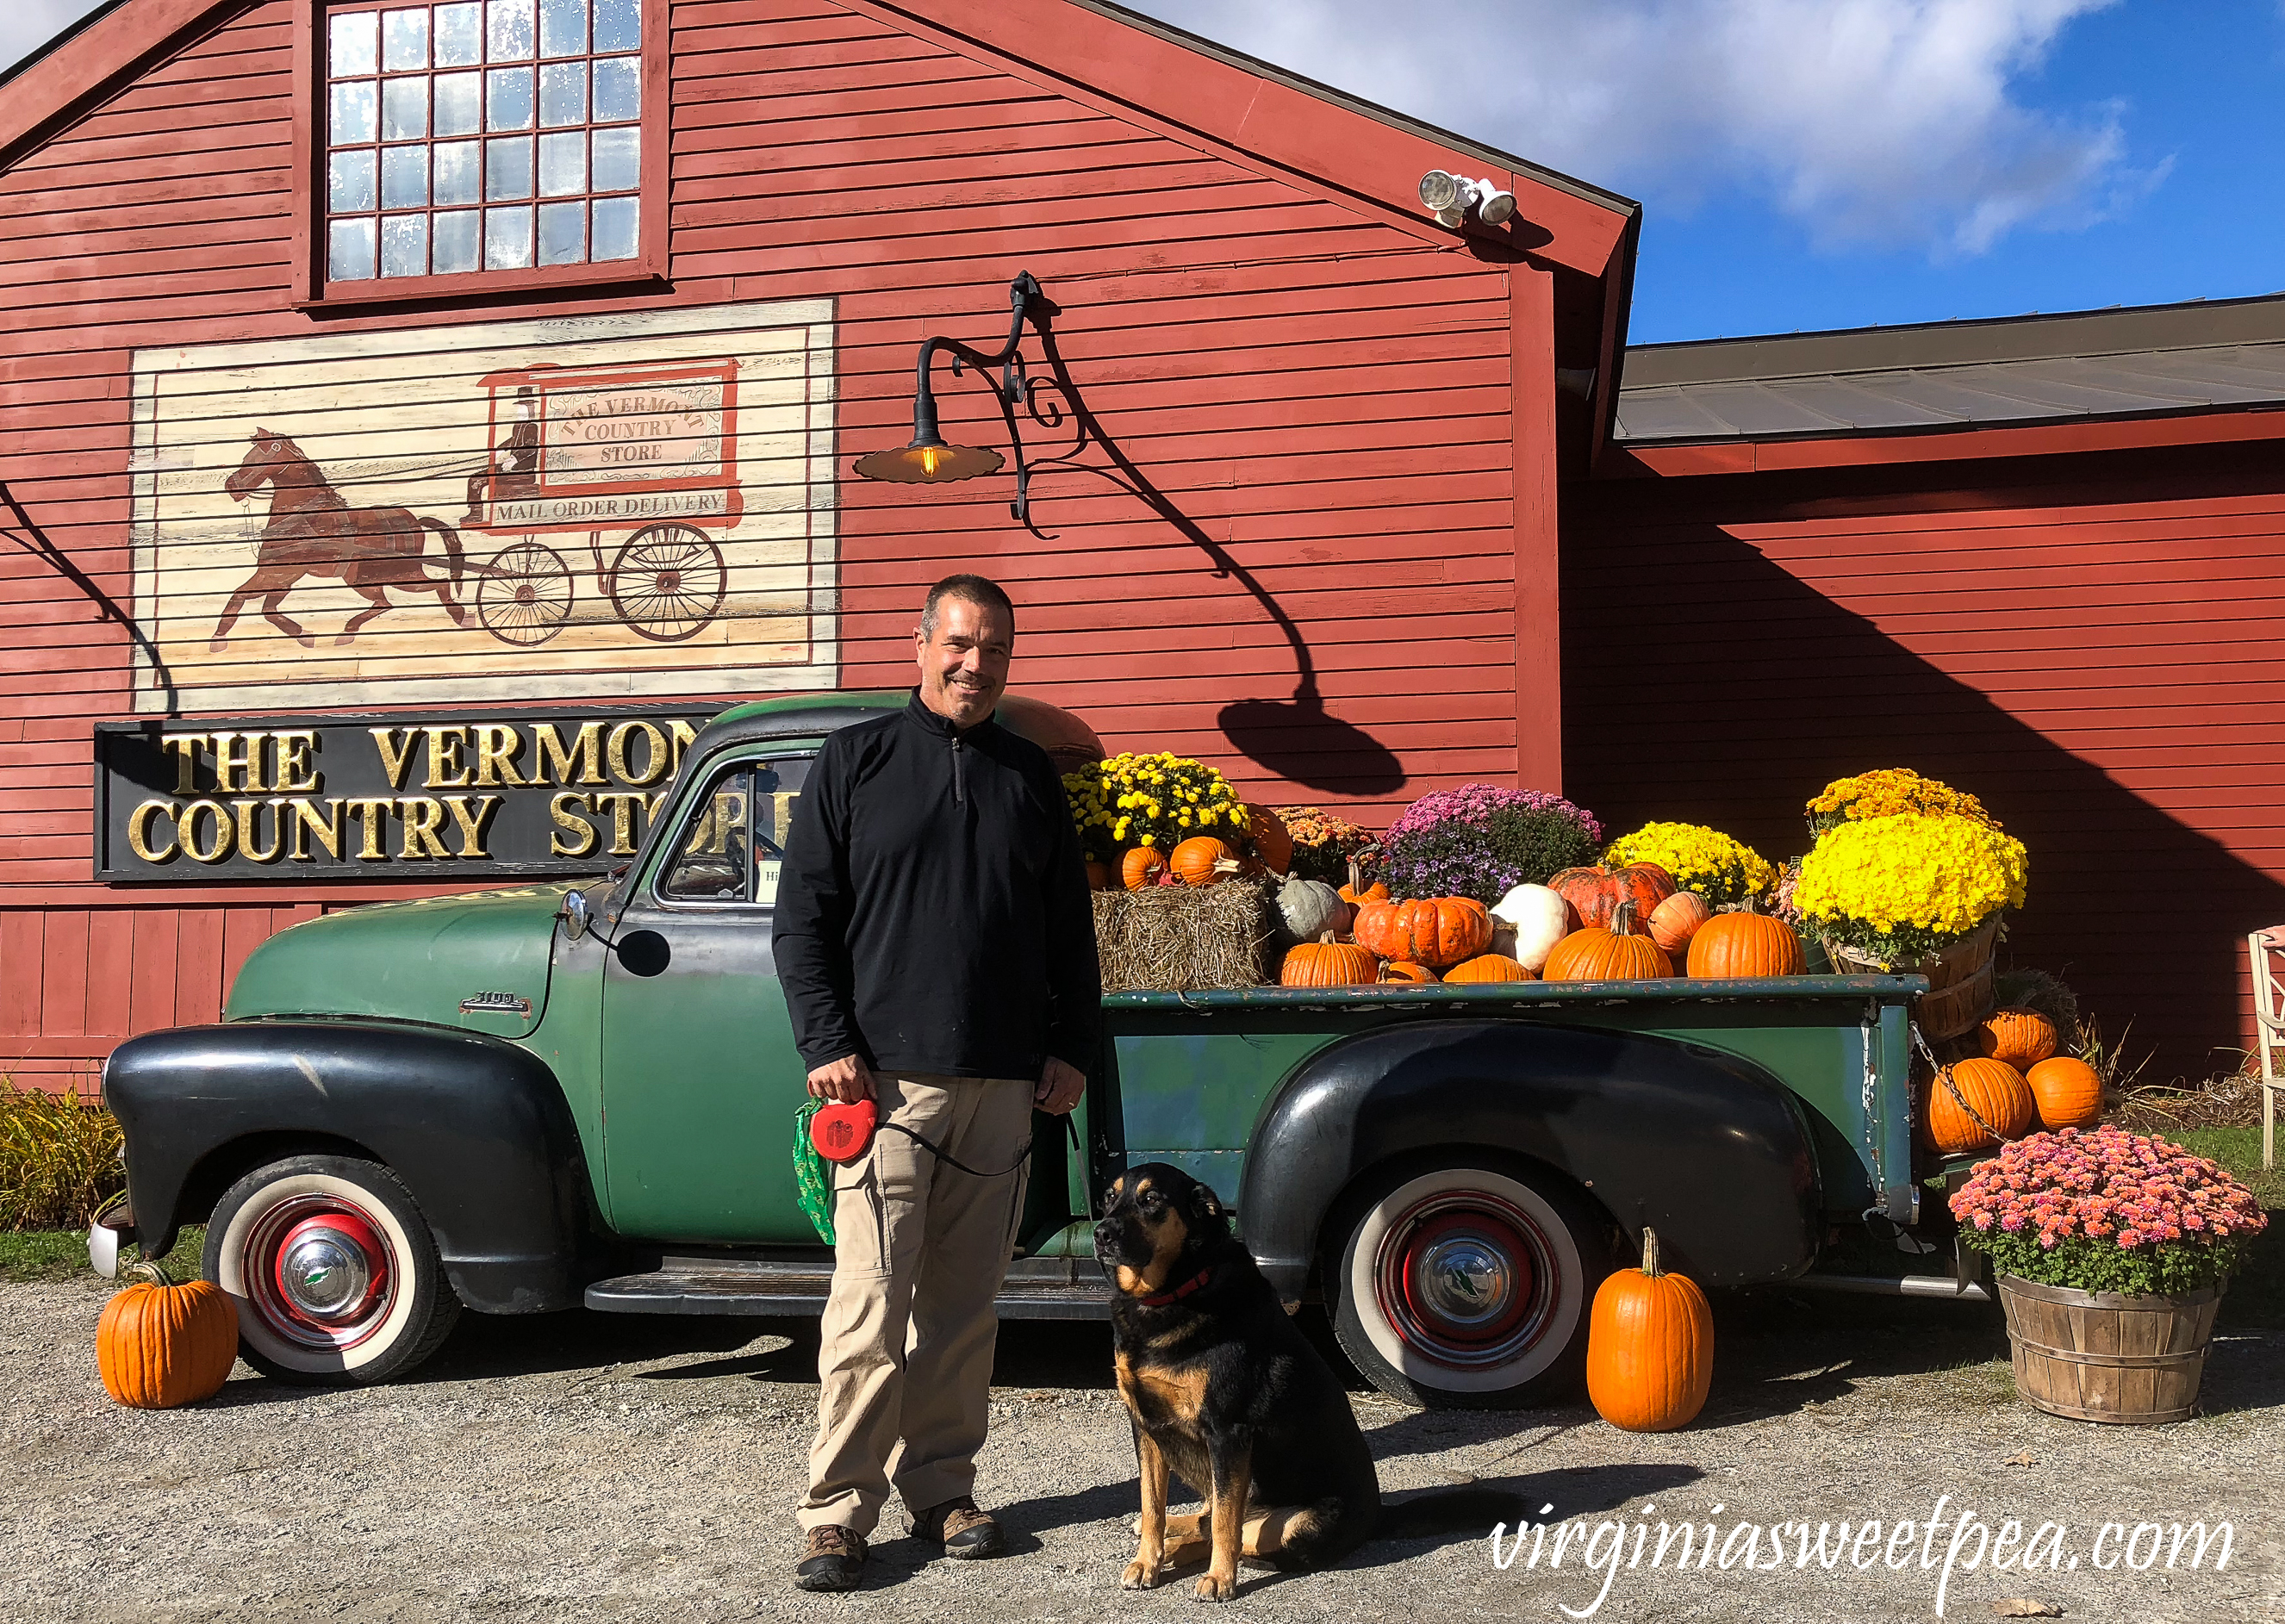 Visiting The Vermont Country Store #vermont #thevermontcountrystore #fall #fallinvermont